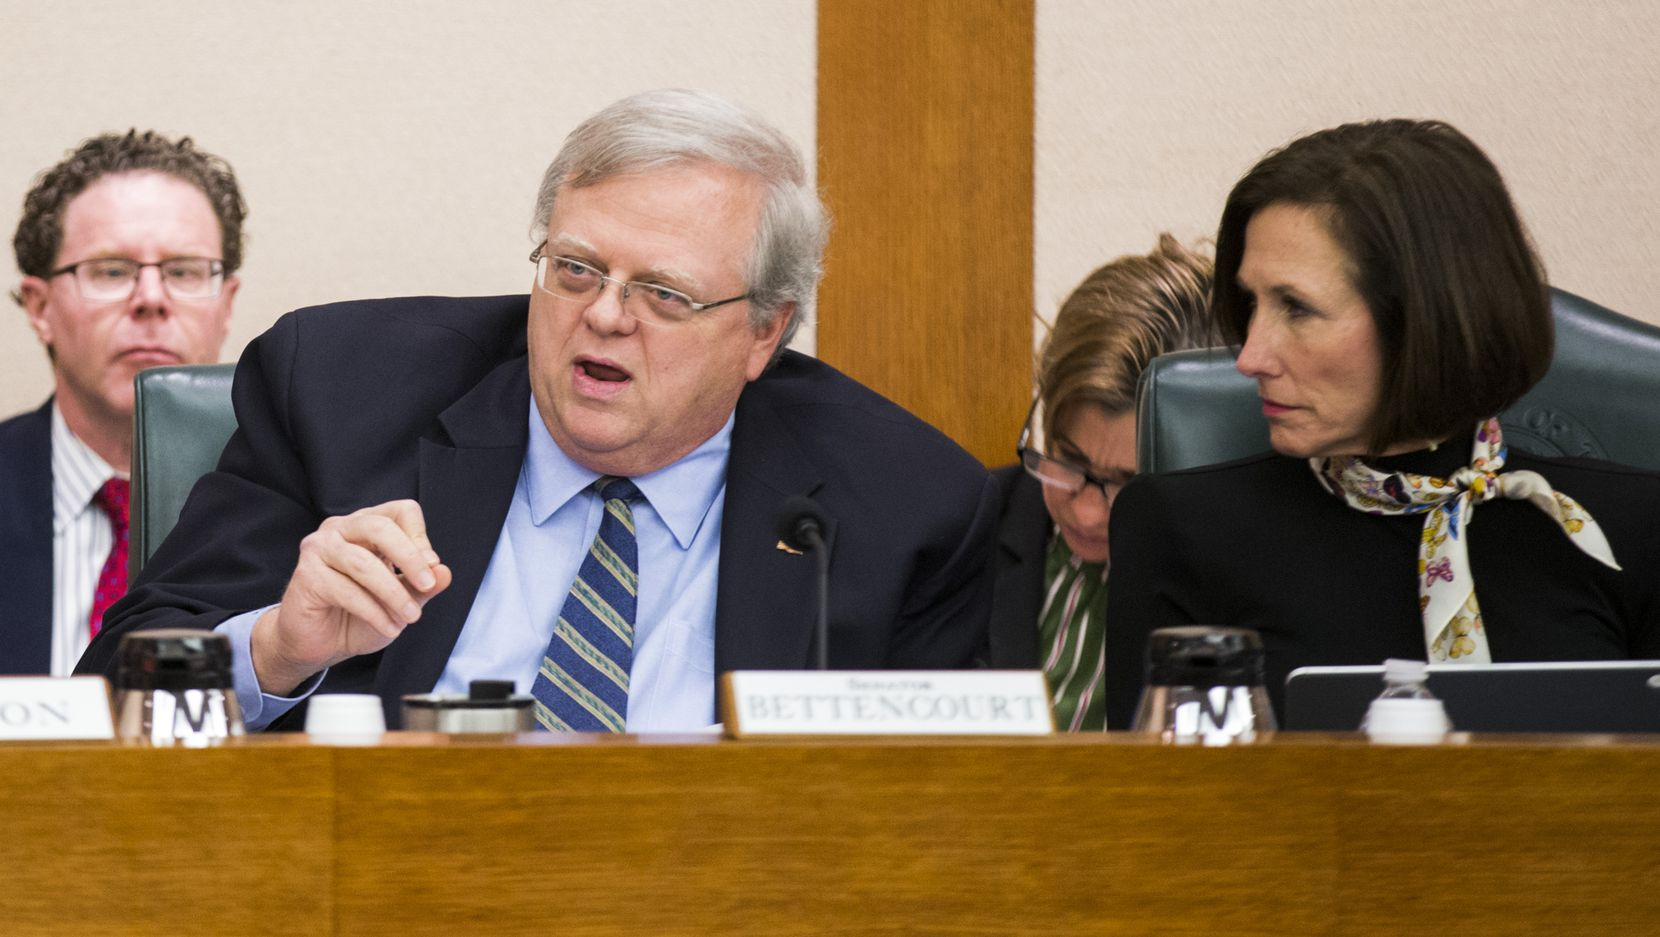 Sen. Paul Bettencourt, shown at a February committee hearing, declined to respond directly this week to questions about recent tensions with his longtime ally Lt. Gov. Dan Patrick.